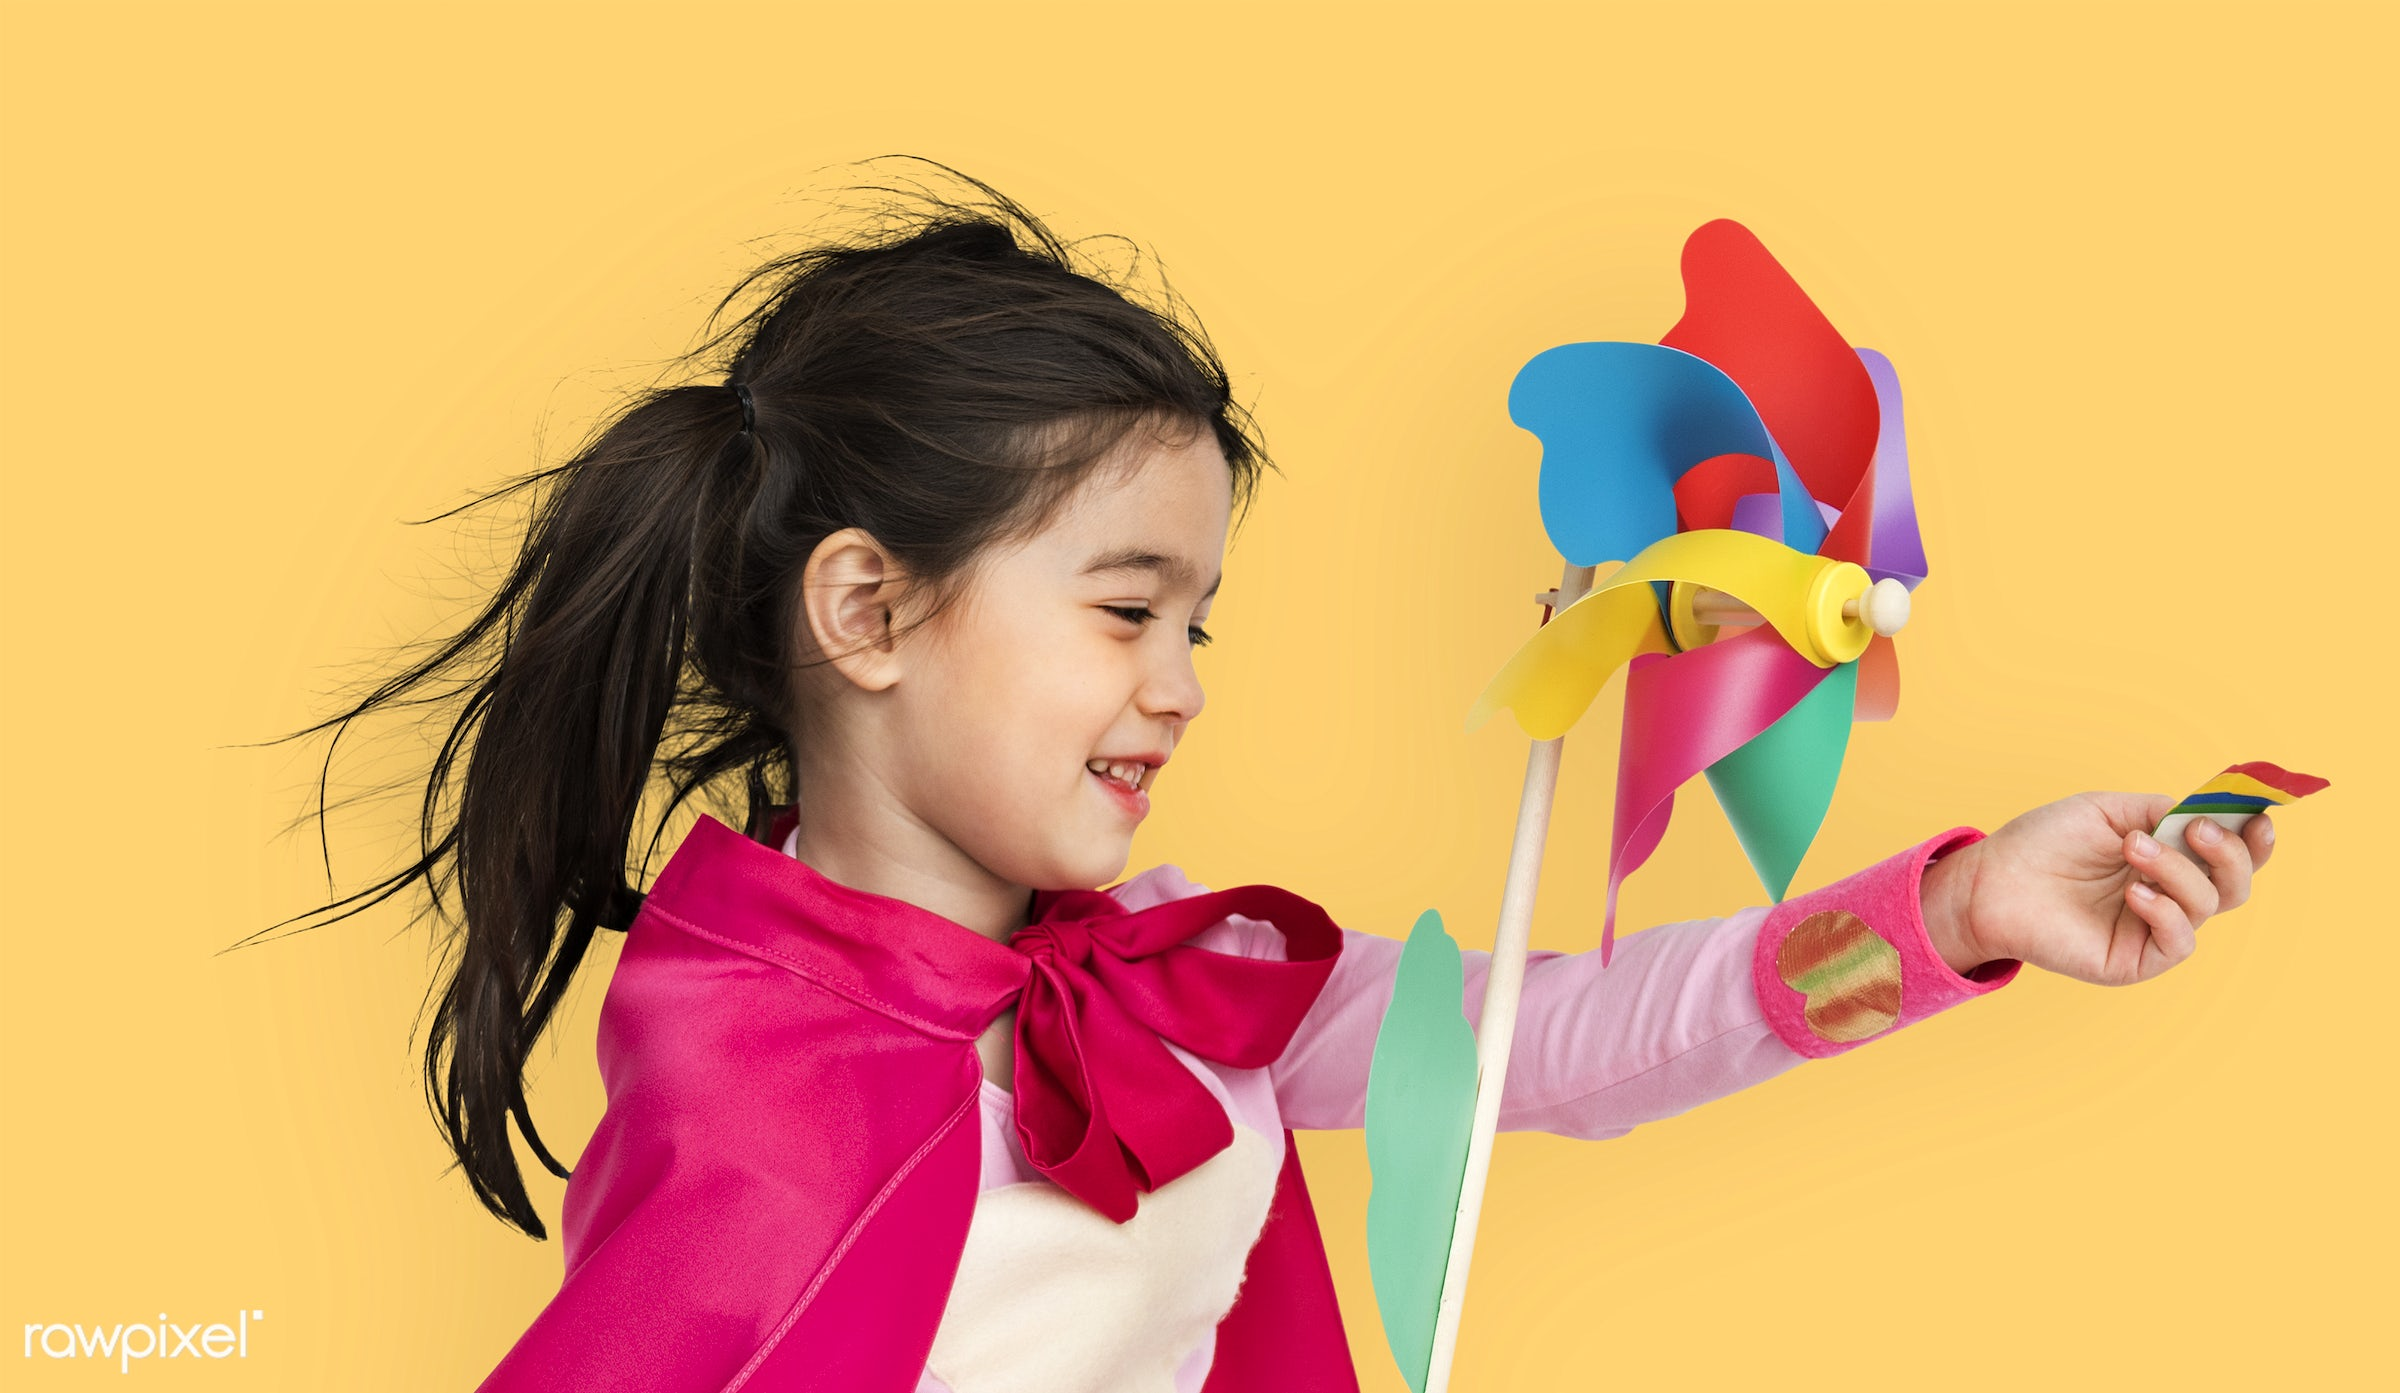 studio, expression, person, cape, joy, little, cute, people, kid, girl, toy, smile, cheerful, smiling, superhero, isolated,...